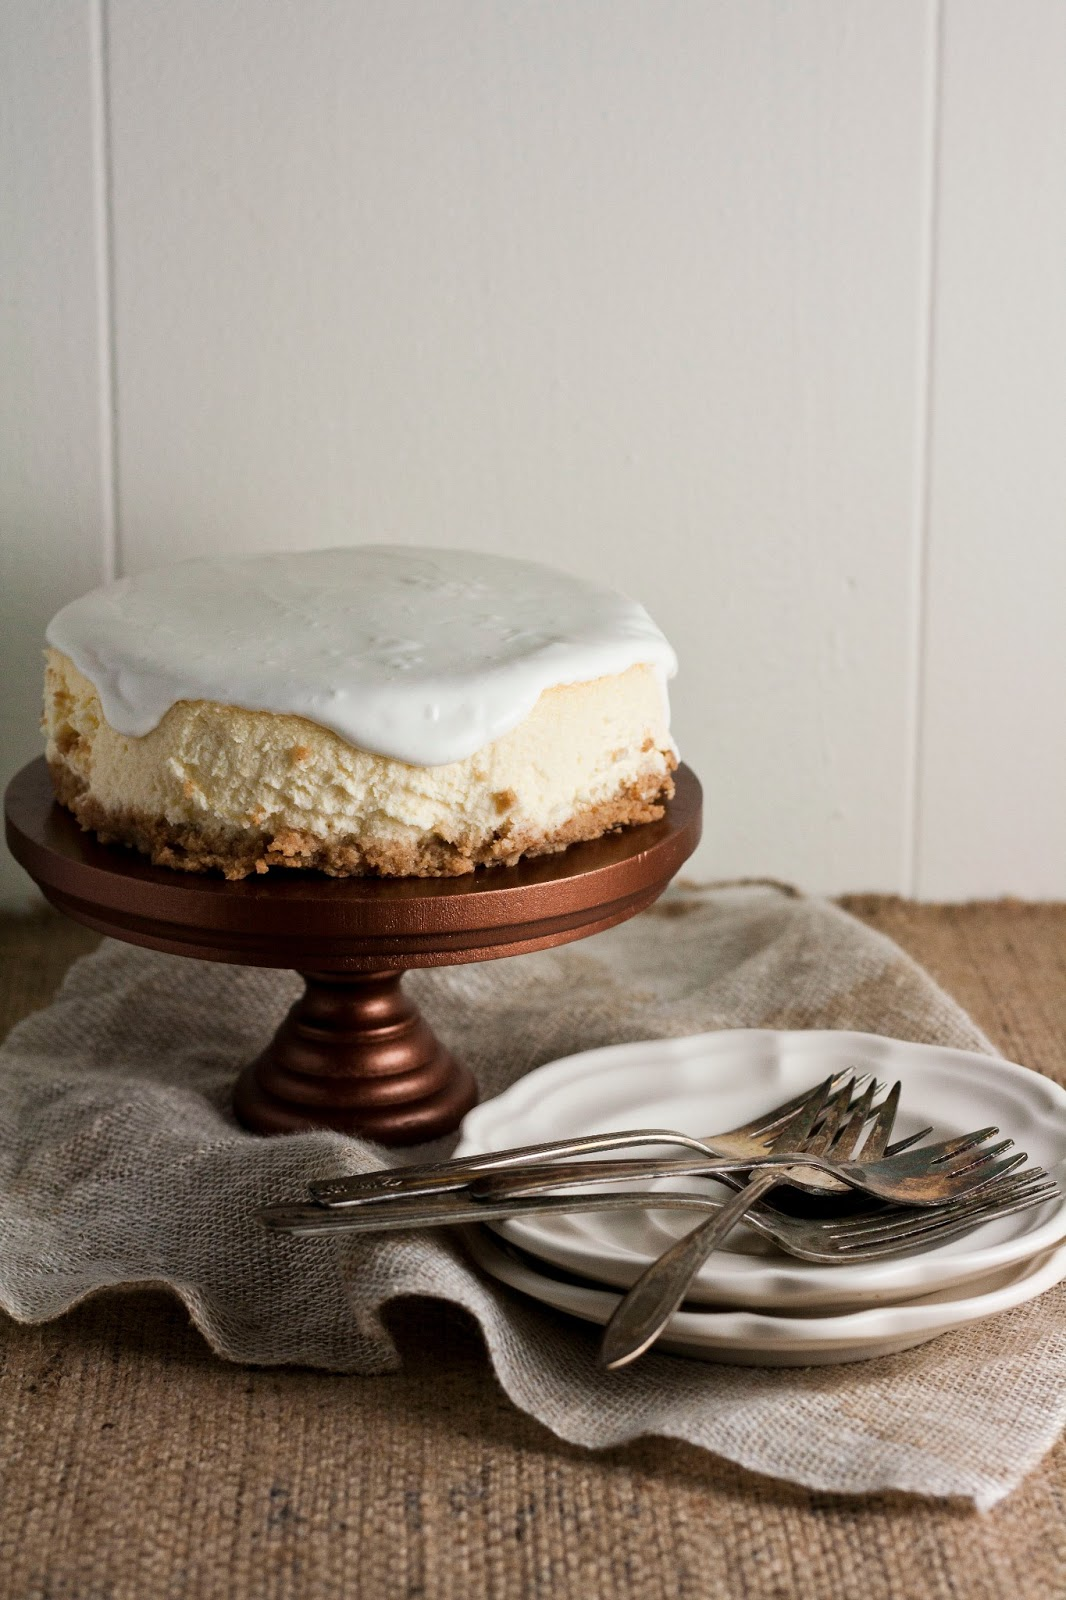 Miette Is Famous For Making Small Cakes For Instance This Cheesecake Is Baked Using A 6 Inch Springform Pan